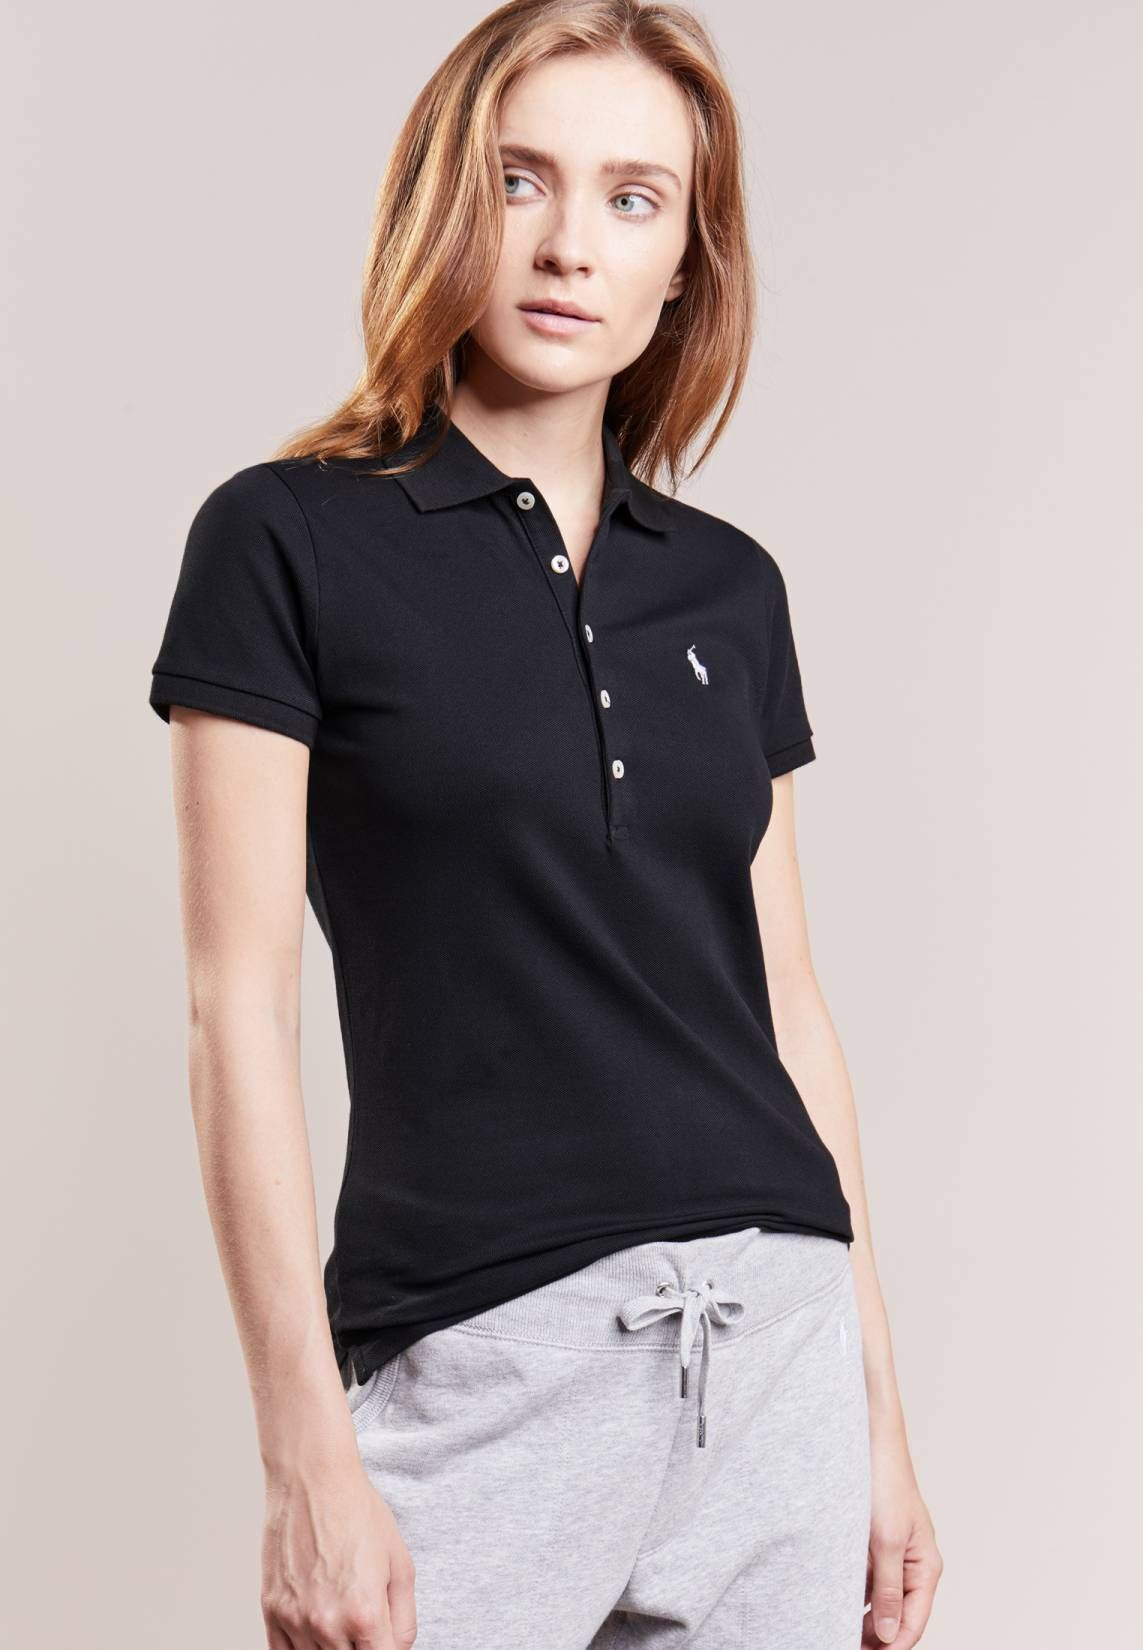 1abcab65 Polo Ralph Lauren. JULIE SKINNY FIT - Polo shirt - black/white. Fit:small.  Outer fabric material:97% cotton, 3% spandex. Our model's height:Our model  is ...